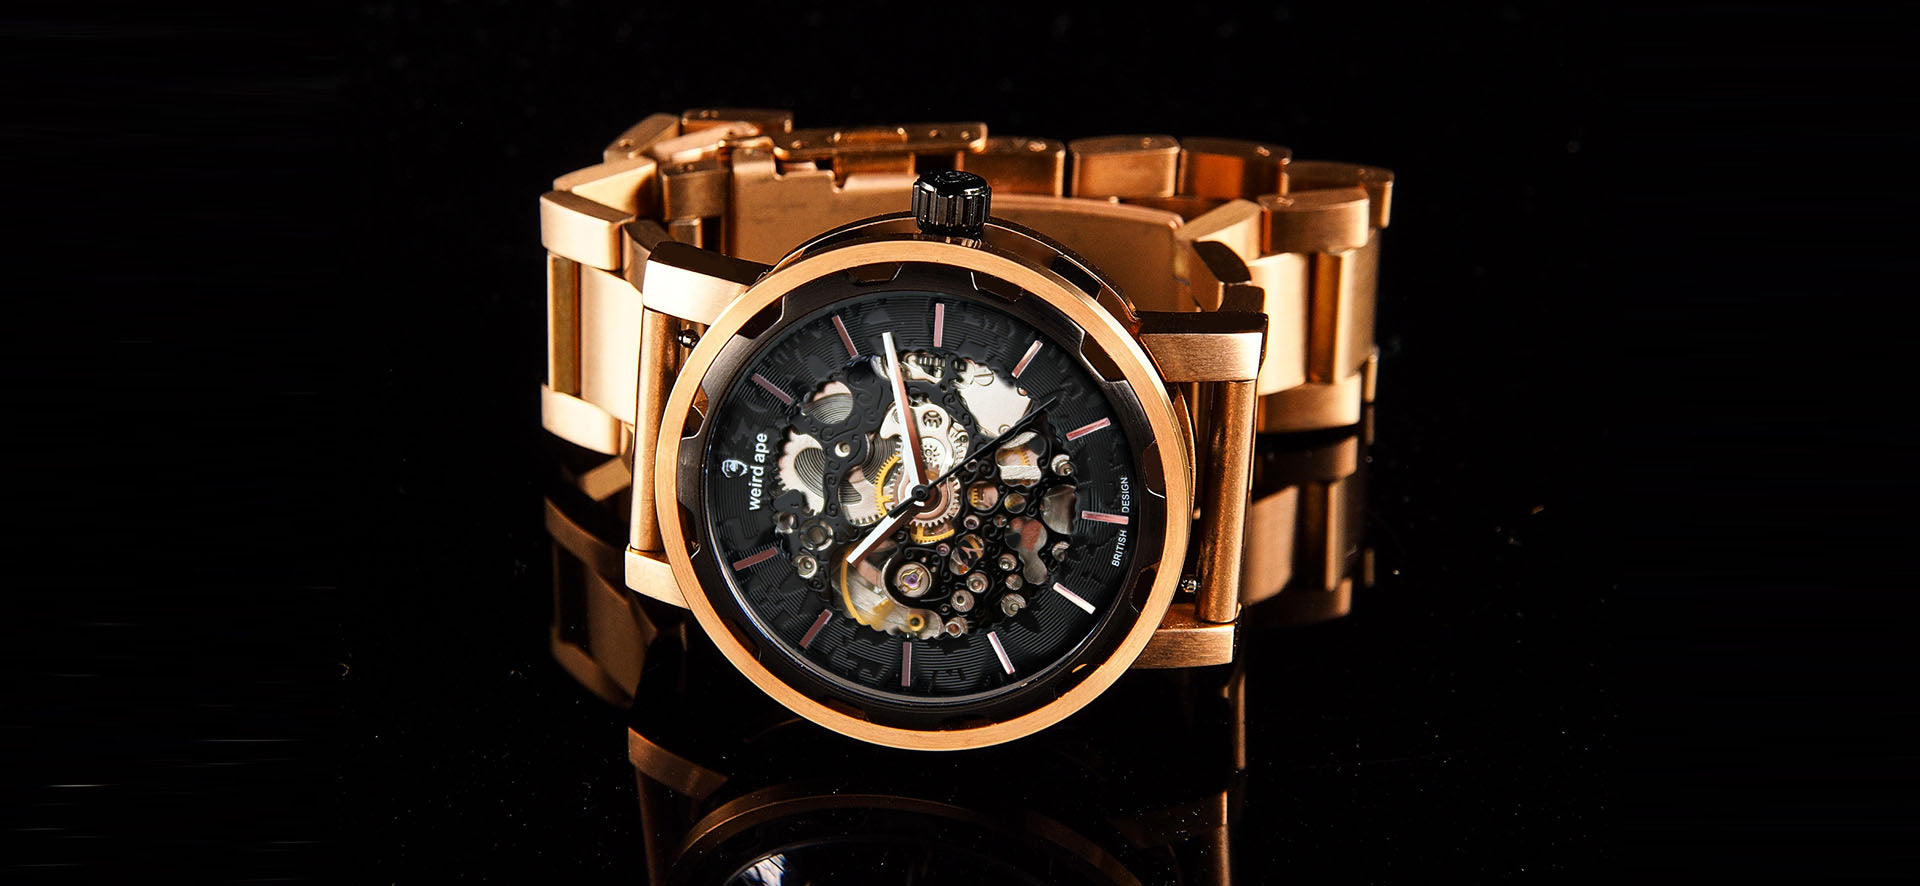 Black rose gold skeleton watch with a black rose gold strap in a lifestyle image